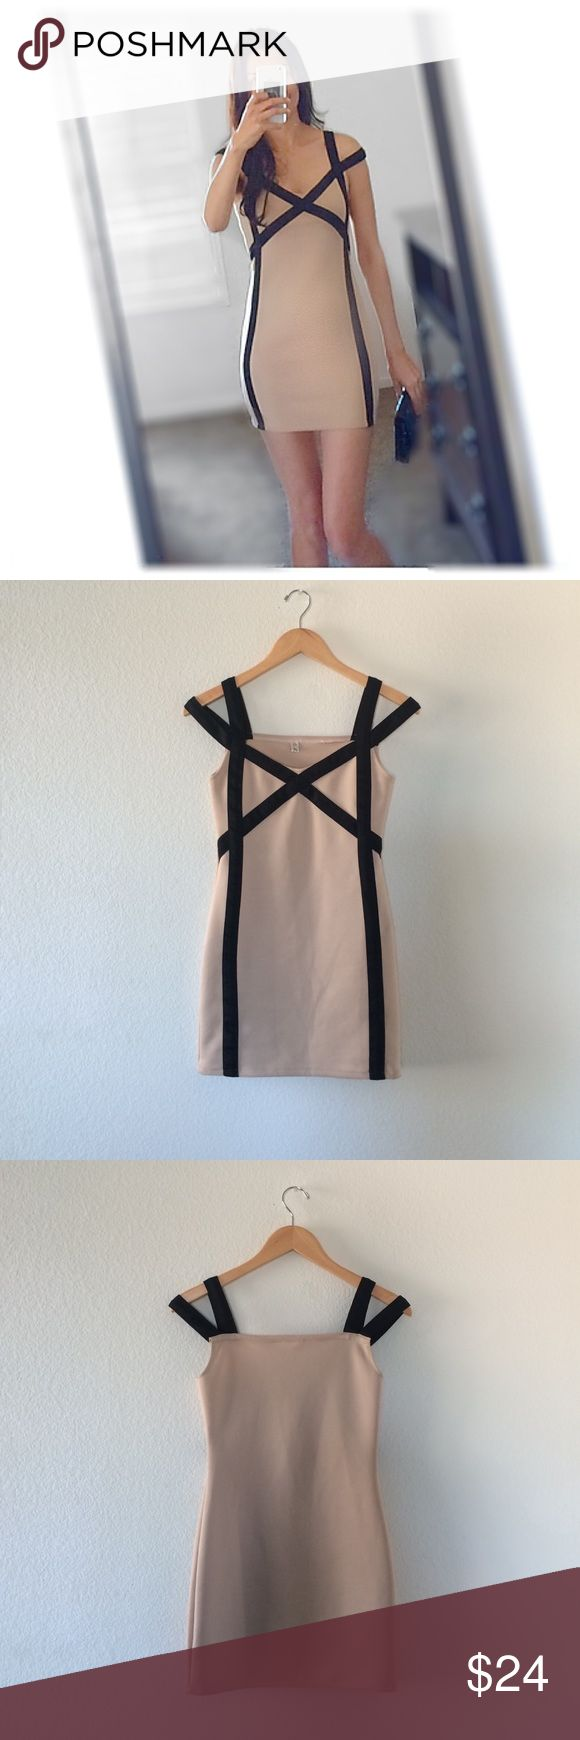 Tan and black stretch dress Sexy Tan and black stretch dress. Good used condition, it has some run treads and wash signs, still a geat dress for a nigth out! Size M , but fits like S.the color is like pinkish tan color with black straps. 💗 bundle and save💗 Dresses Mini